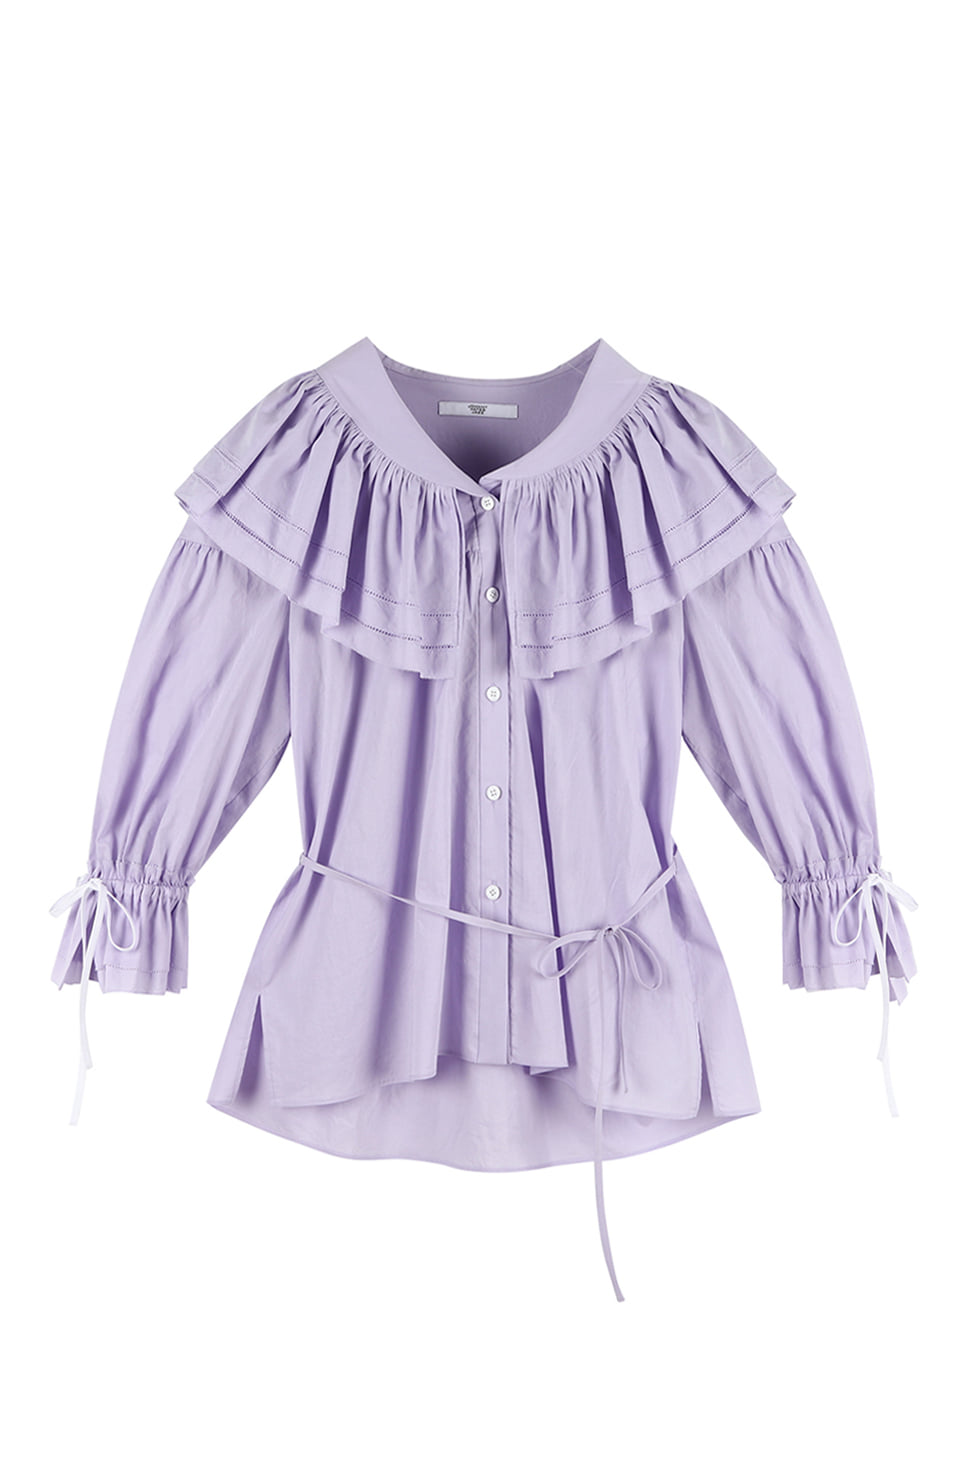 COTTON RUFFLE BLOUSE - PURPLE